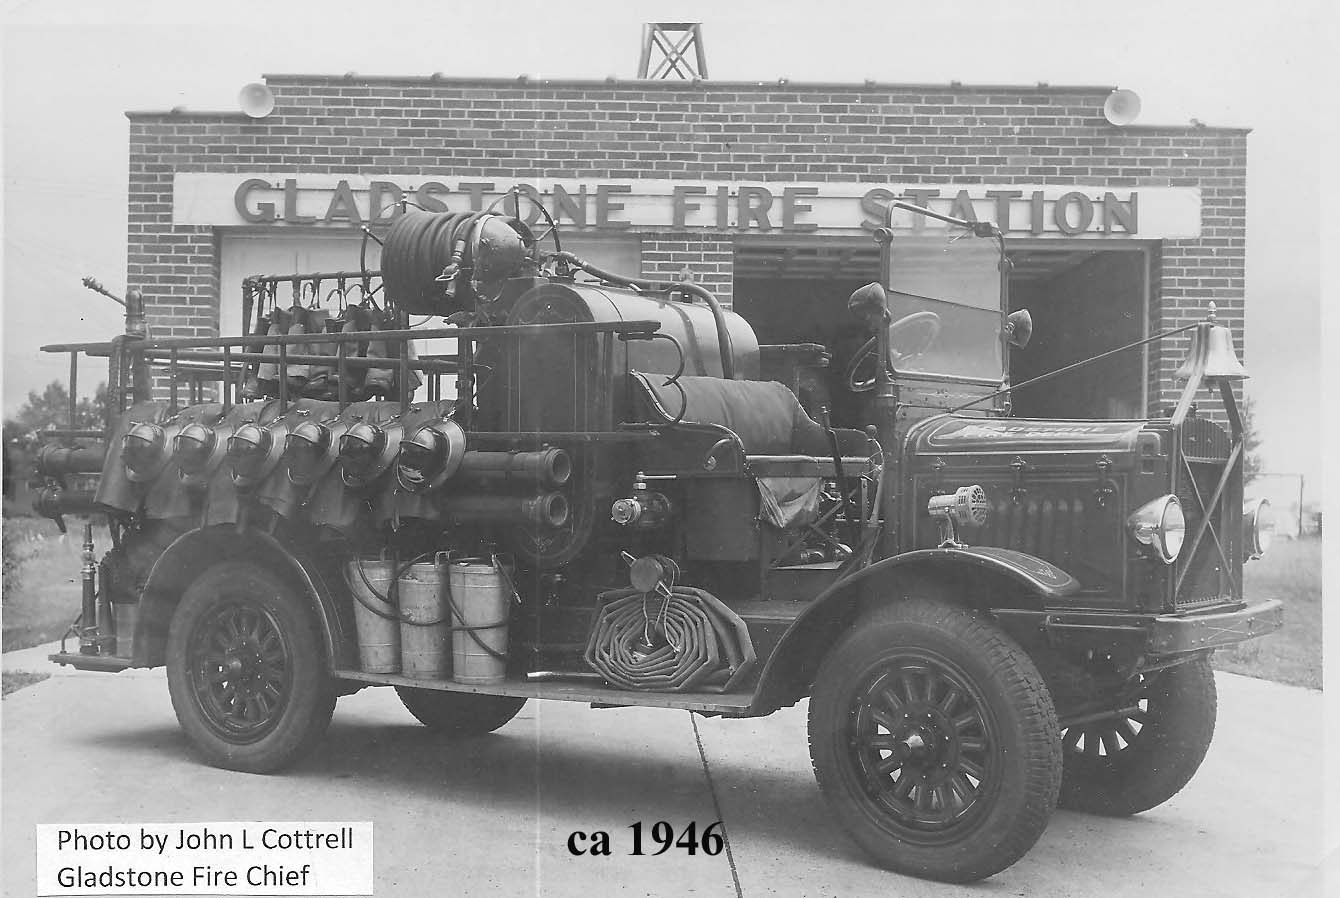 Fire Department Truck in 1946